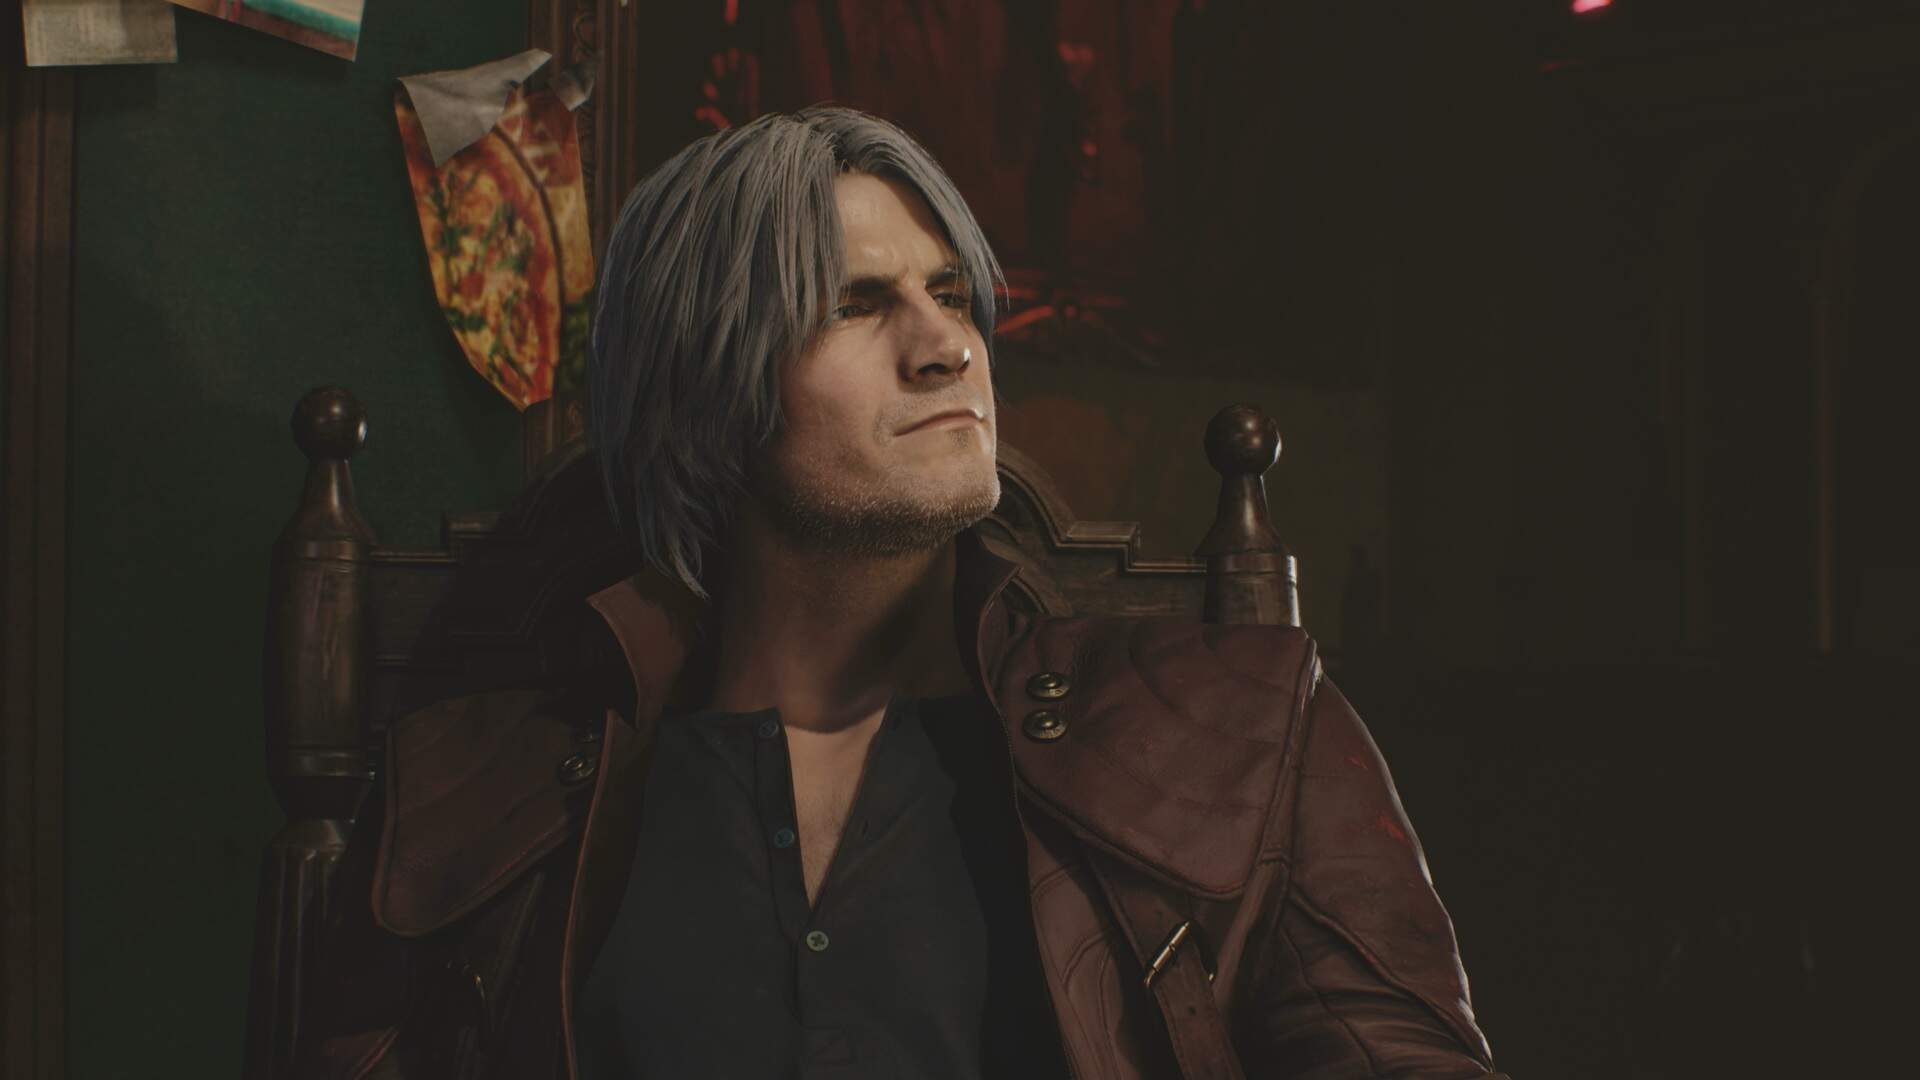 Capcom Leaves DRM-Free Version of Devil May Cry 5 on Steam, With Big FPS Boosts the Result